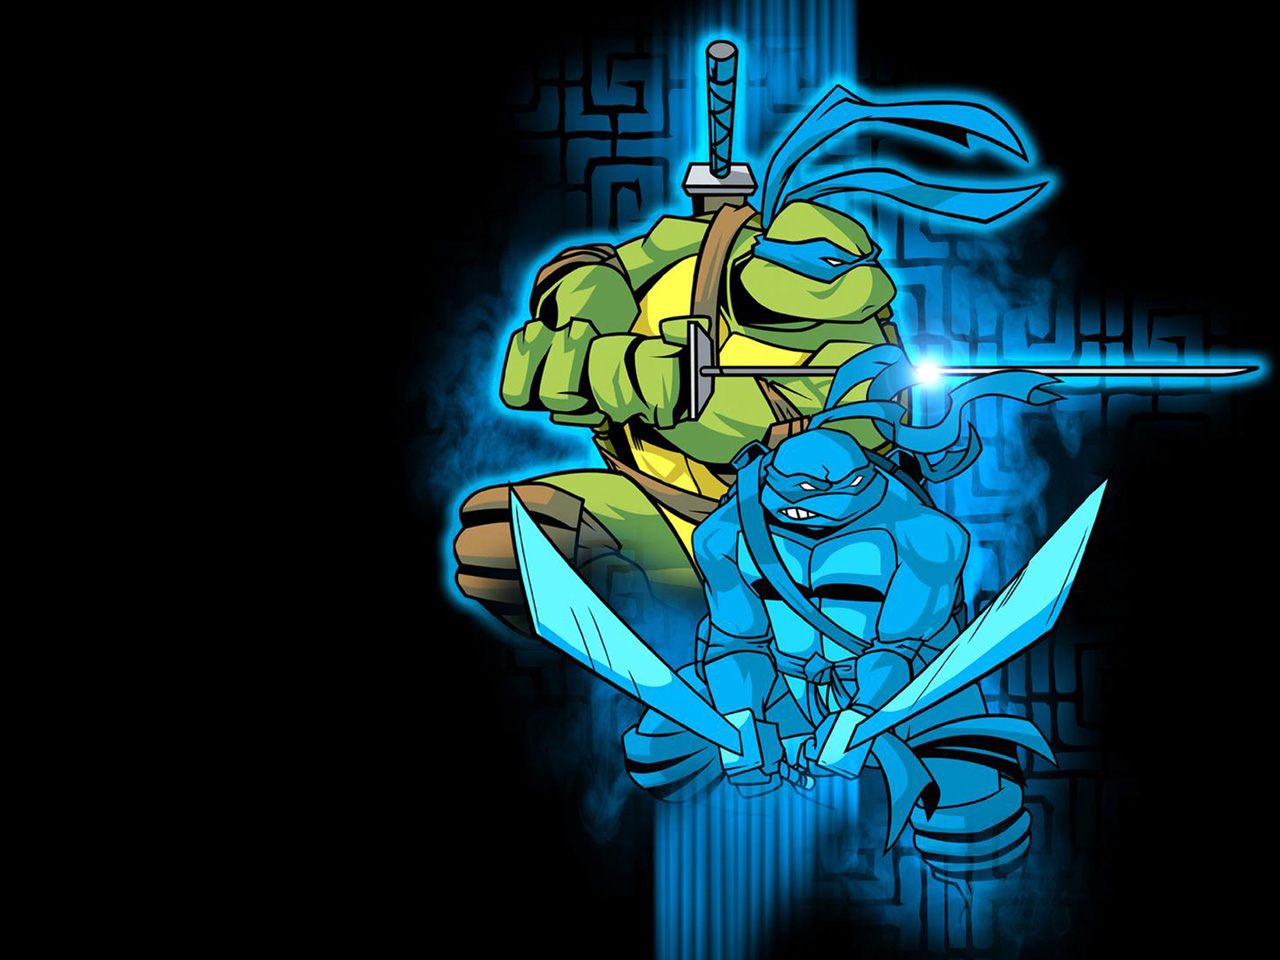 TMNT wallpaper 2003-2009 series (24)